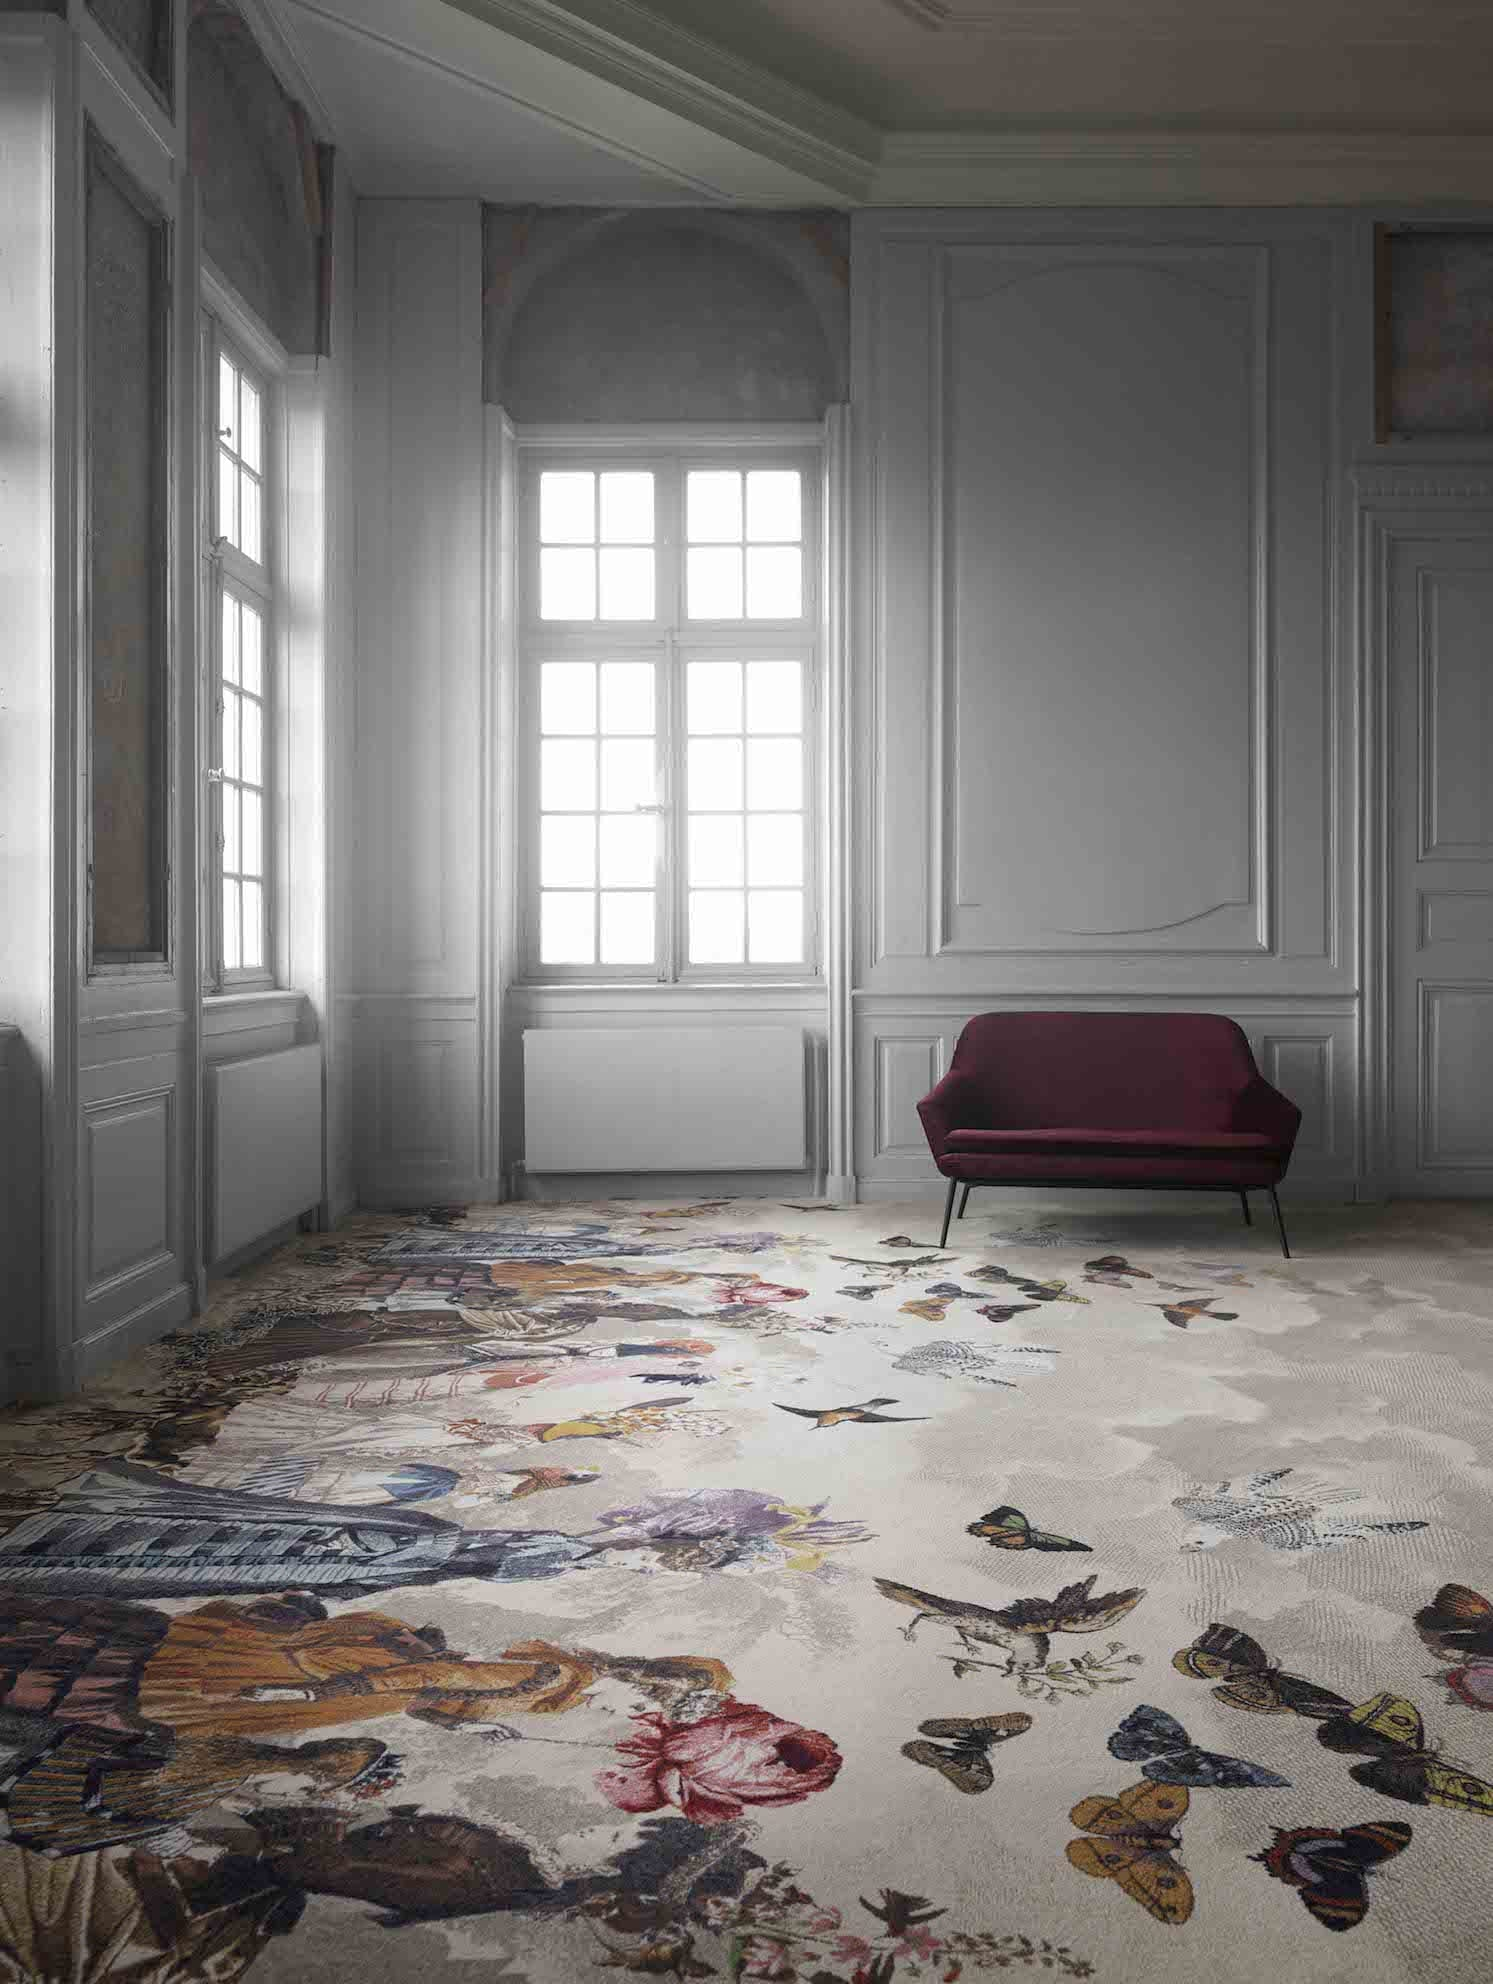 Danish flooring giant launches three new sustainable ranges